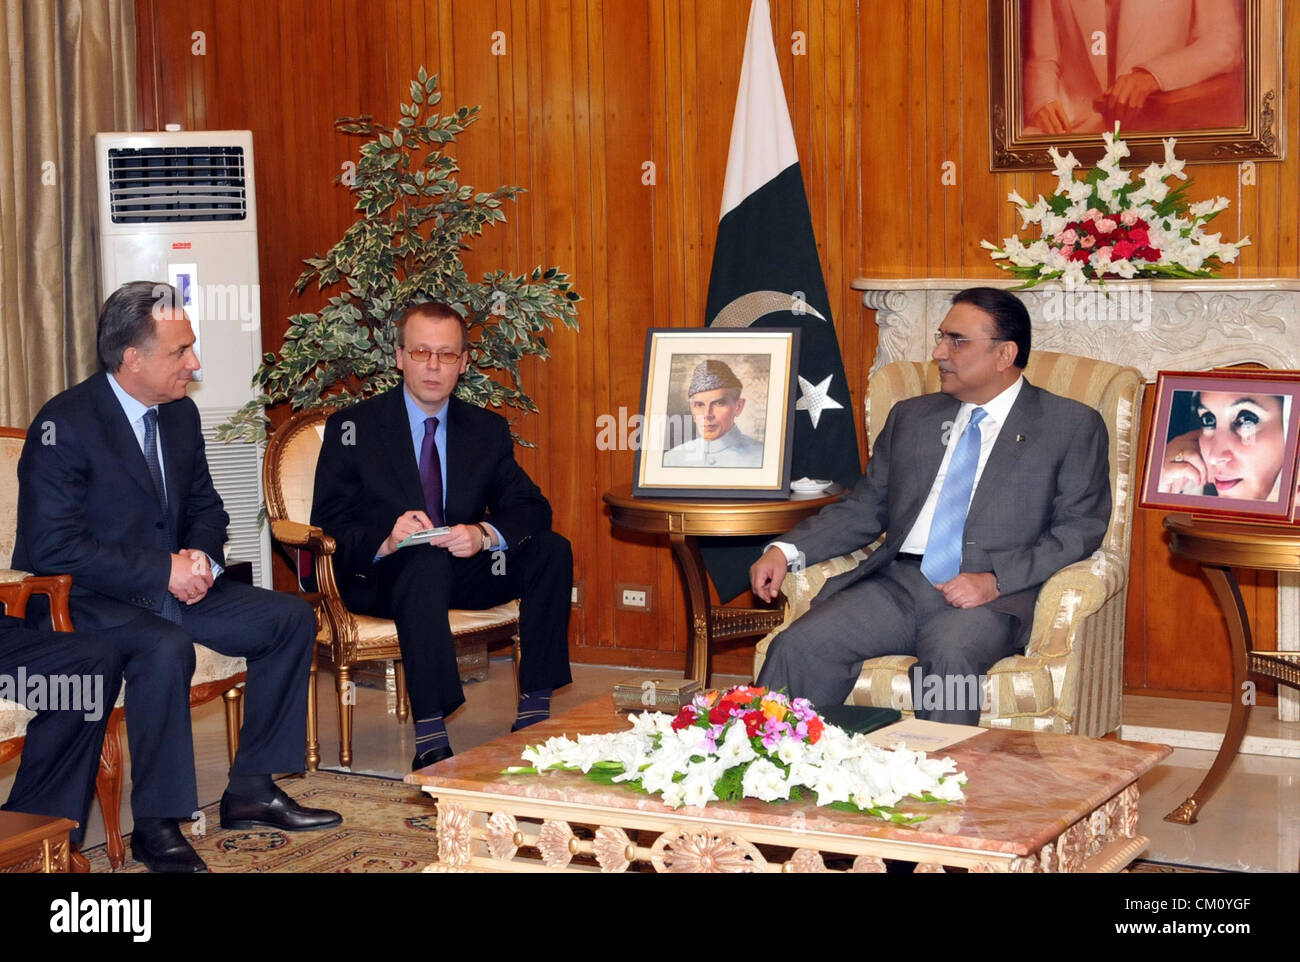 Pakistan President, Asif Ali Zardari exchanges views with Vitaly L.Mutko, Minister for Sports of Russian Federation, - Stock Image